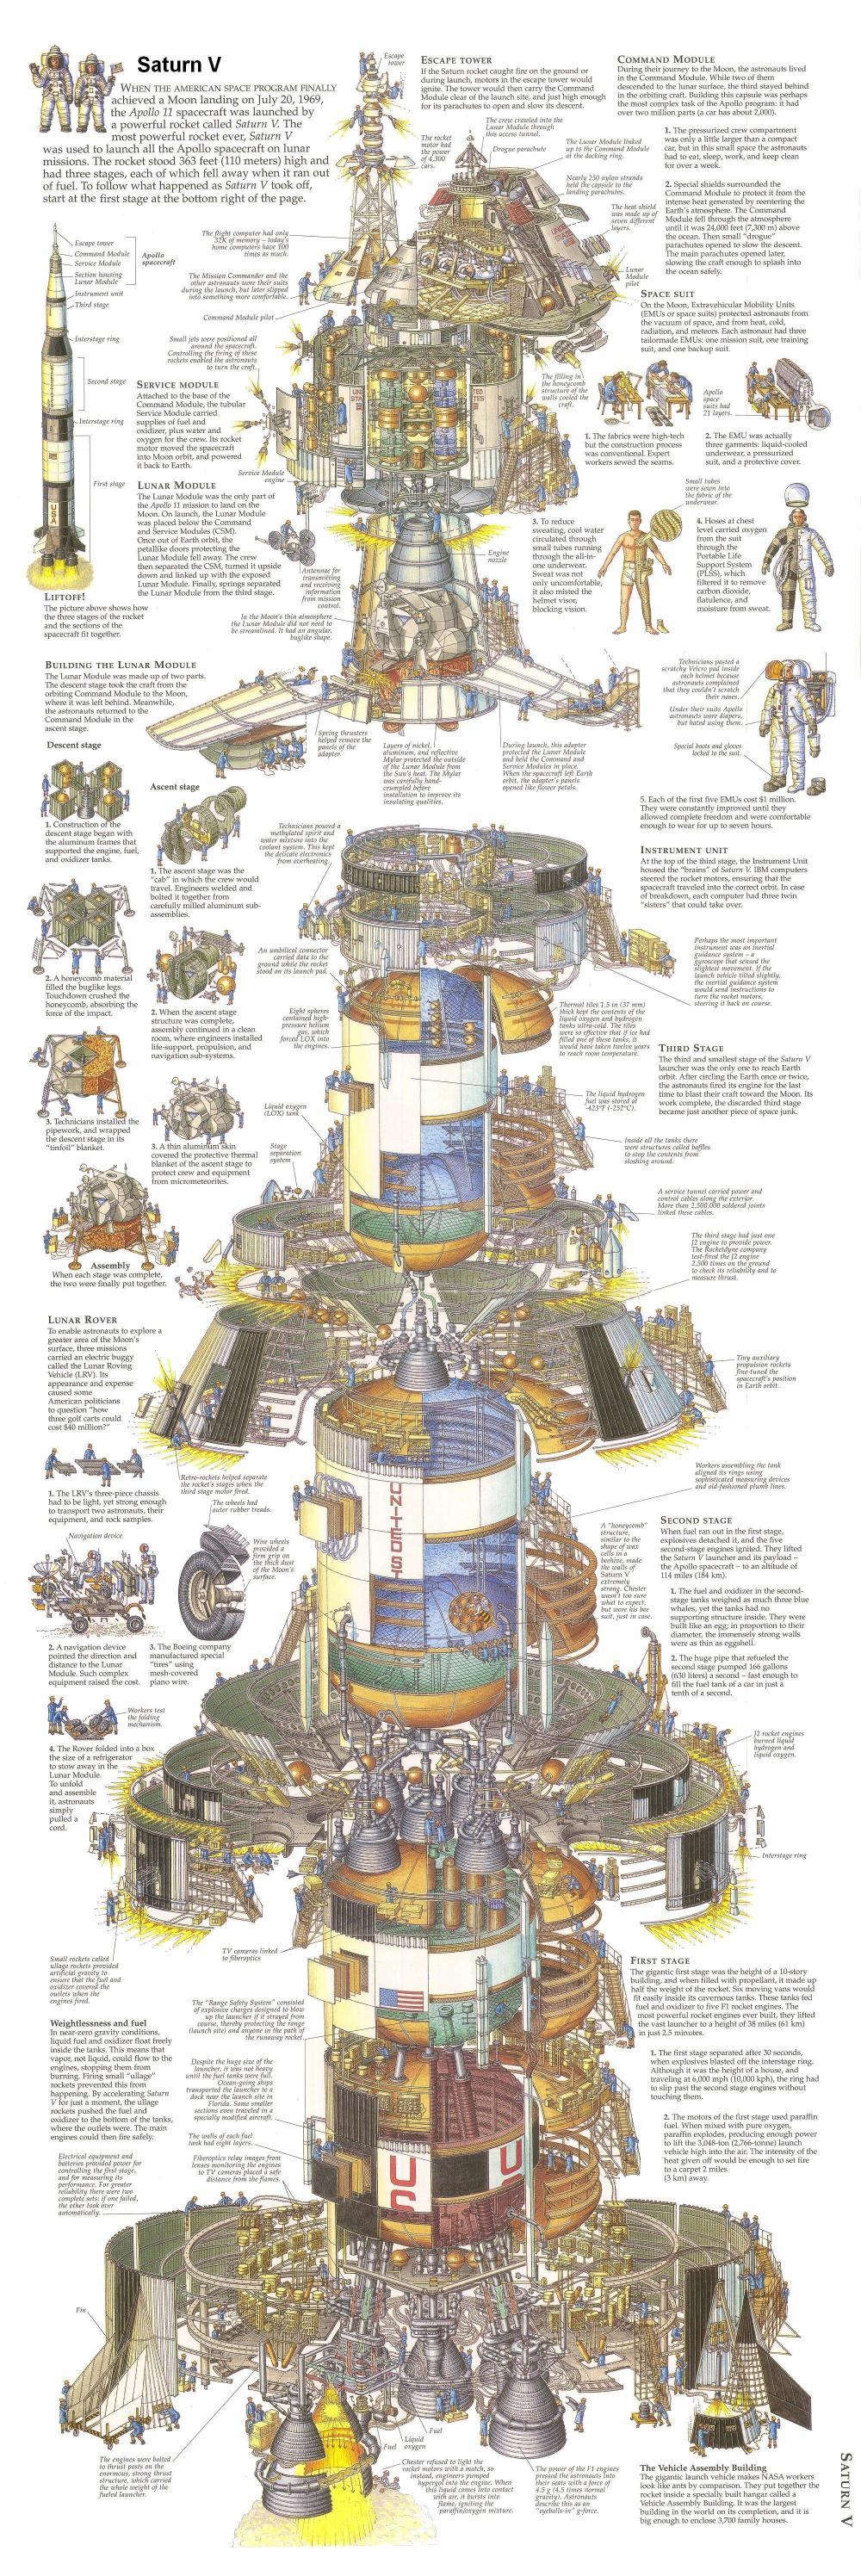 medium resolution of saturn v cutaway diagram